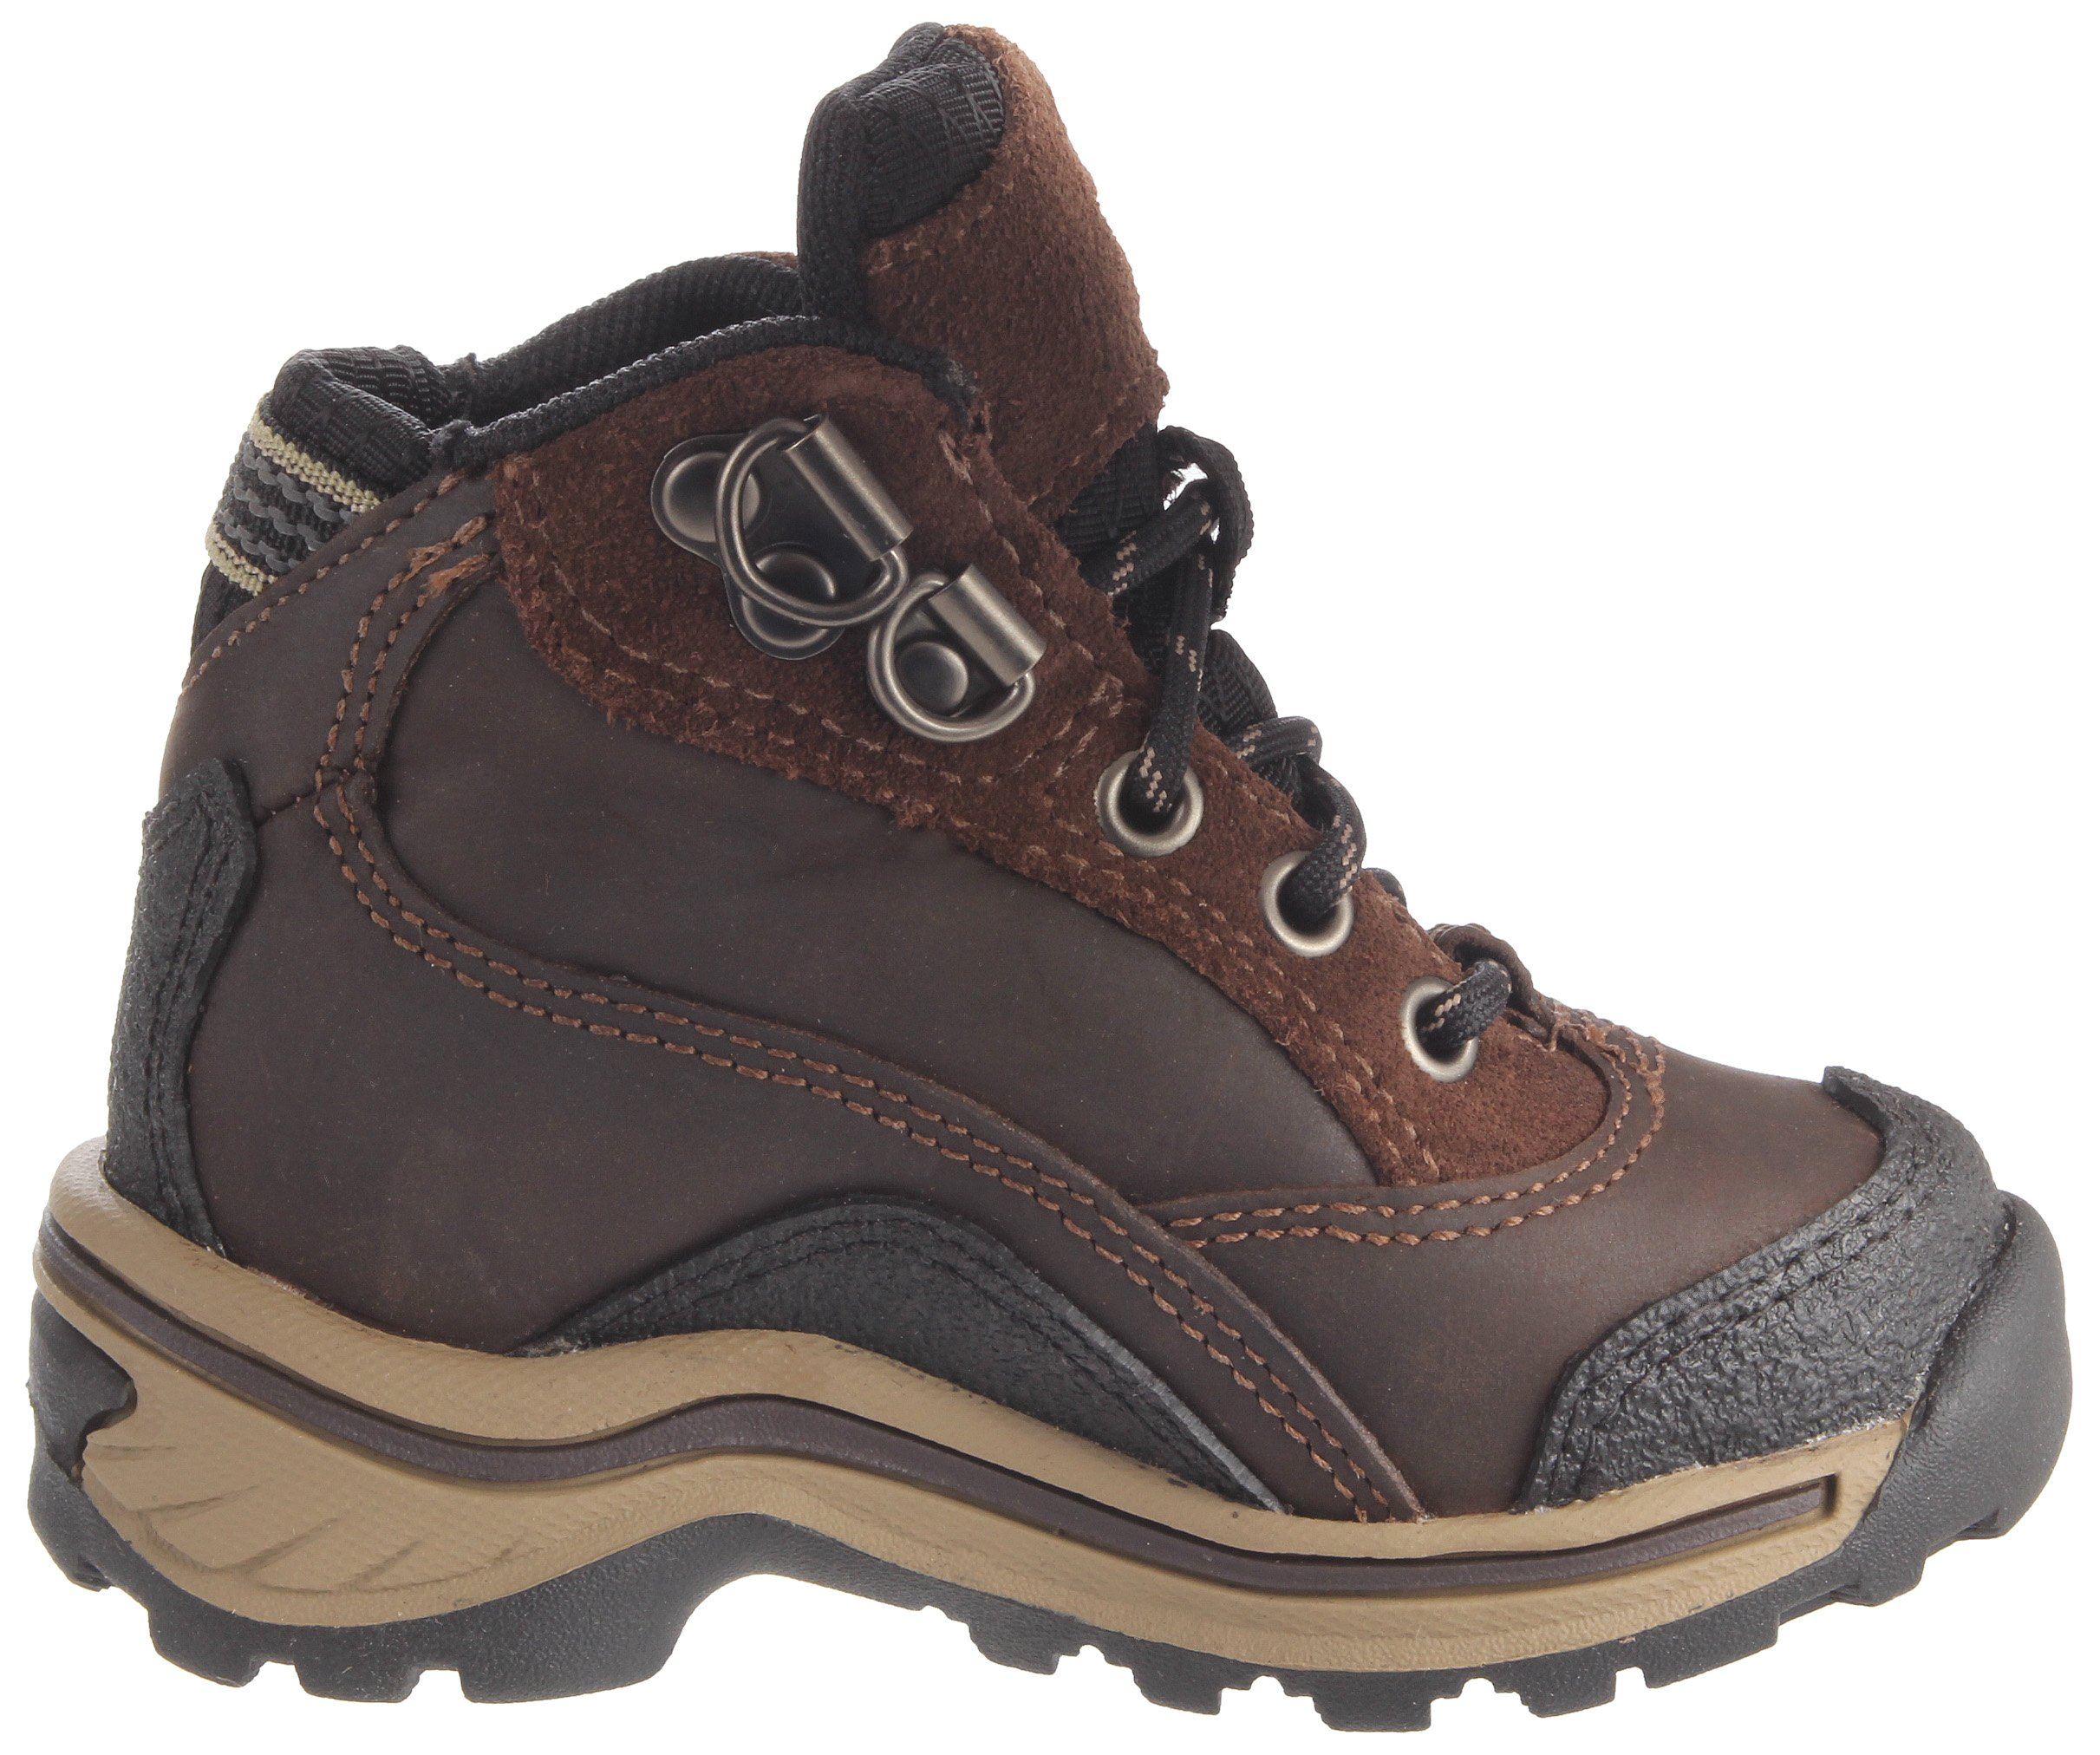 Timberland Pawtuckaway, Unisex-Child Hiking Shoes 6